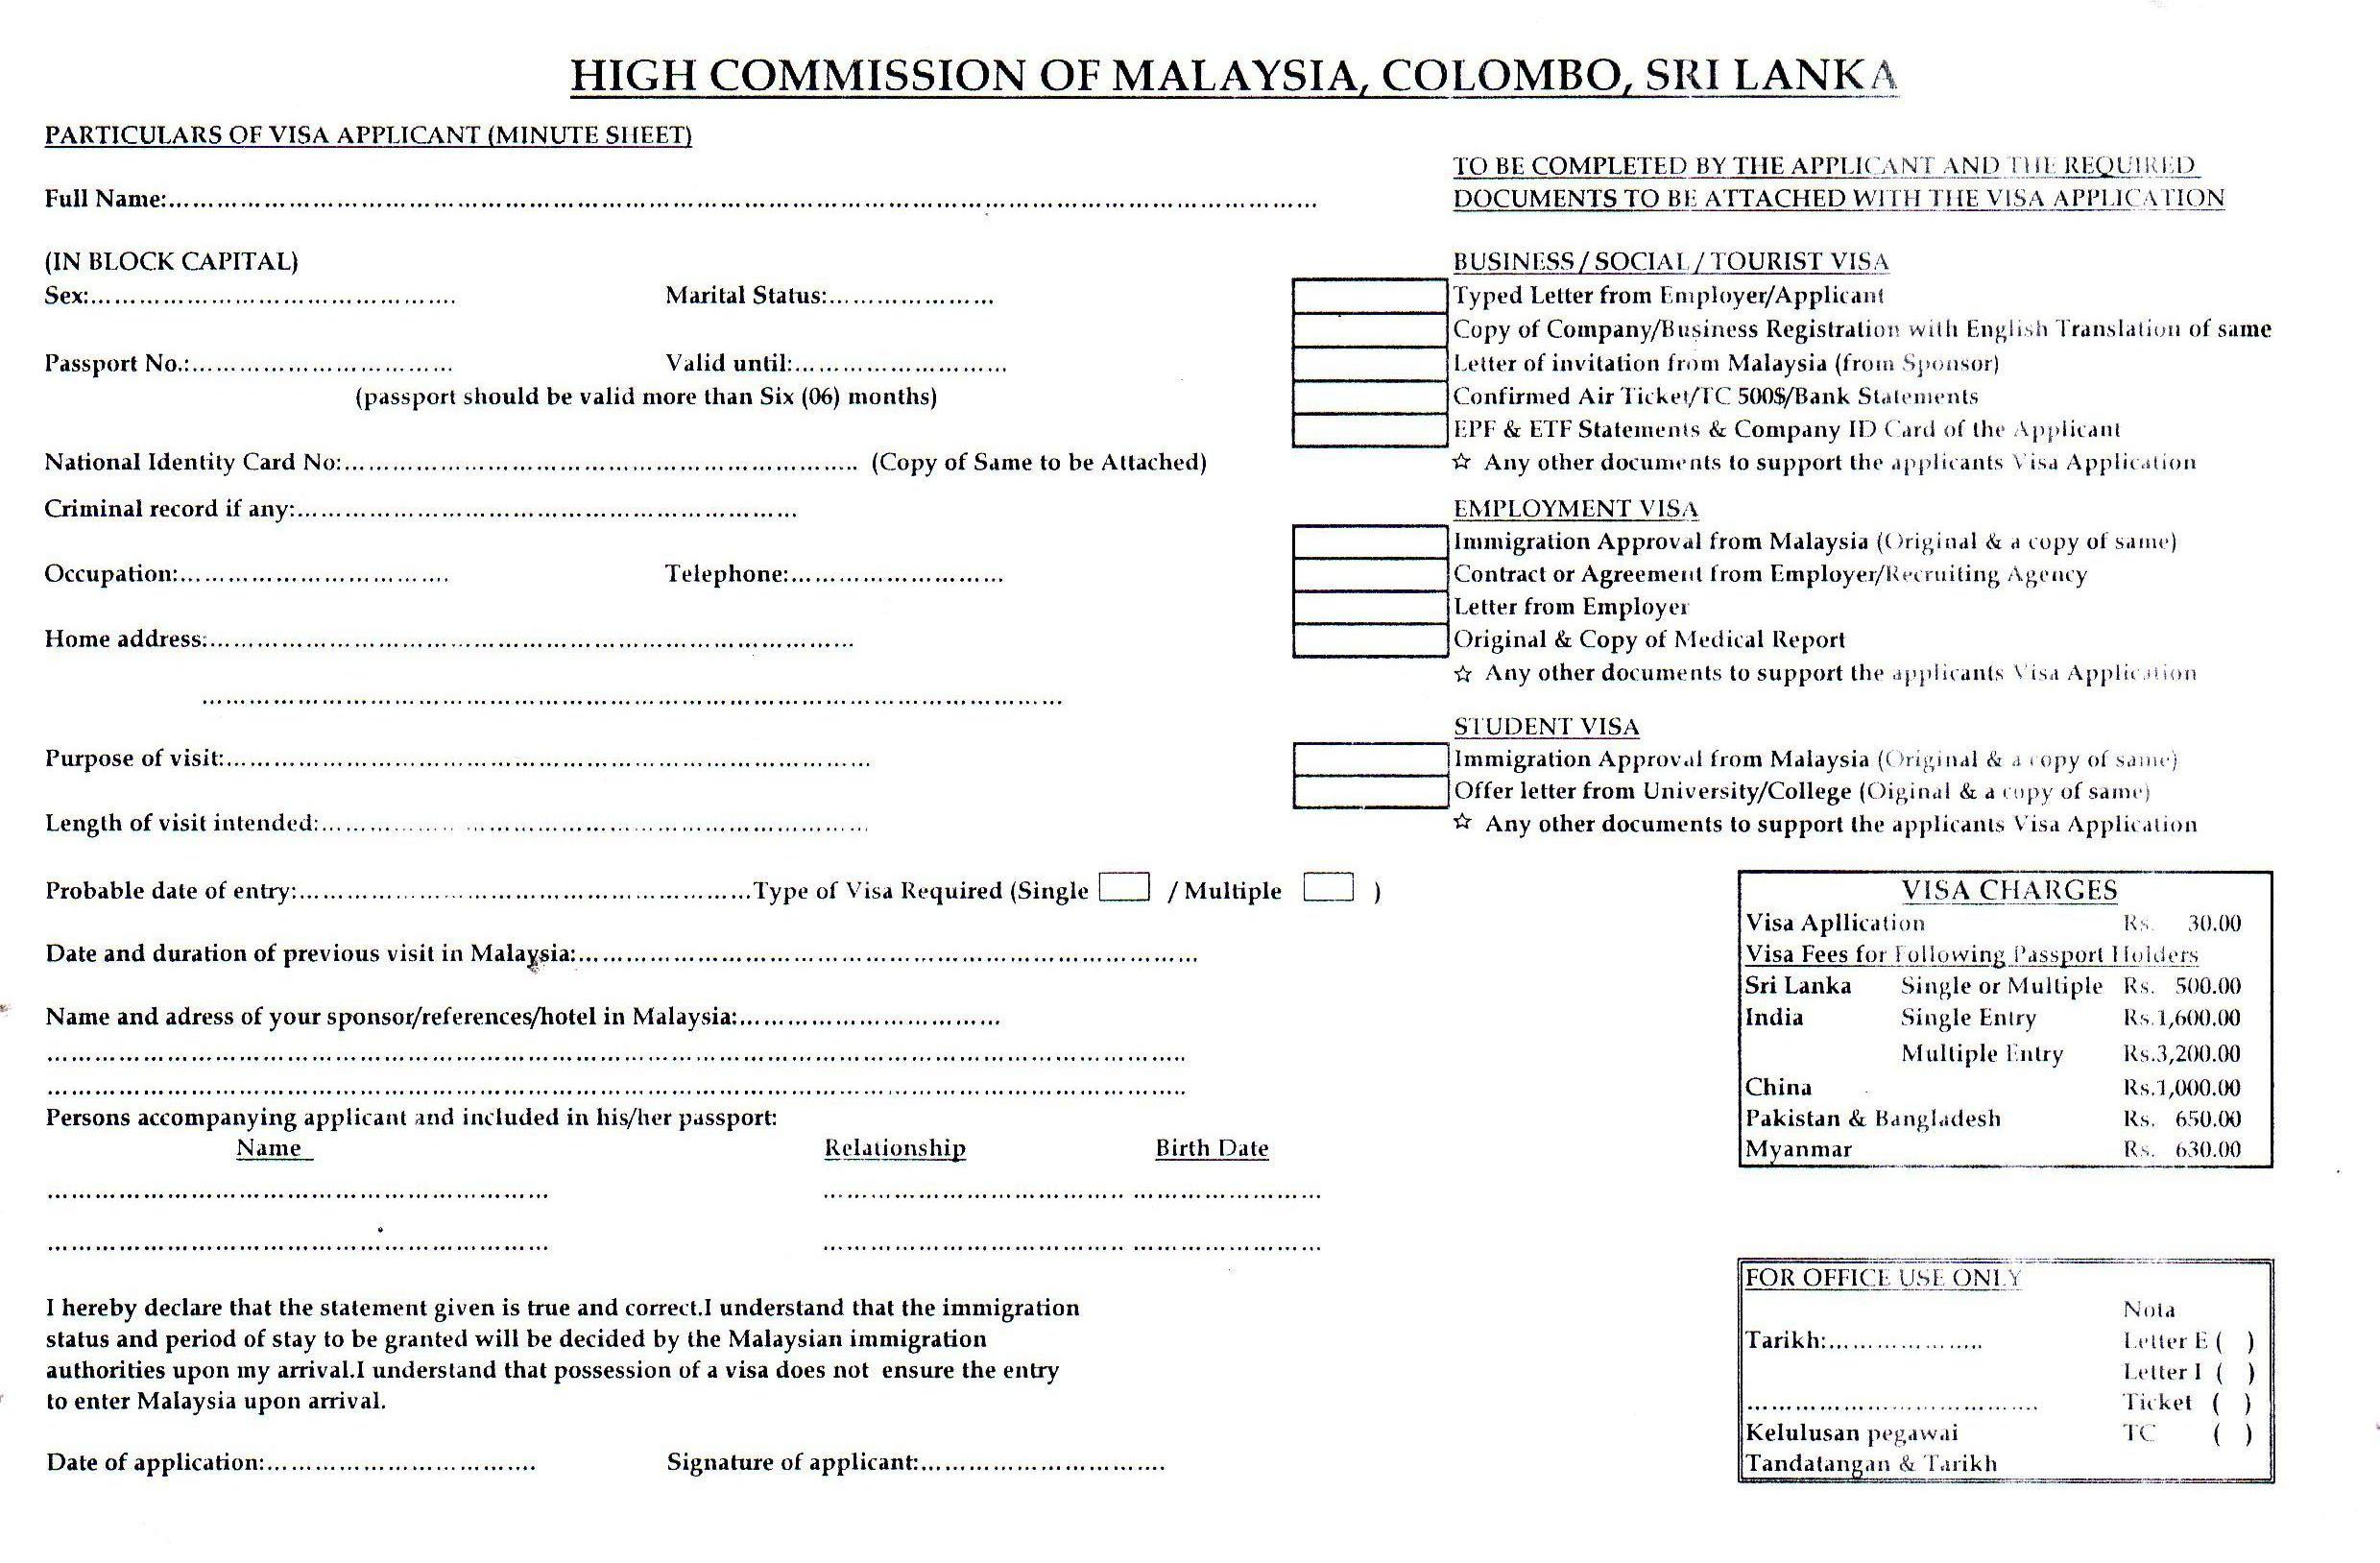 Indian Visa Online Application Form From Sri Lanka